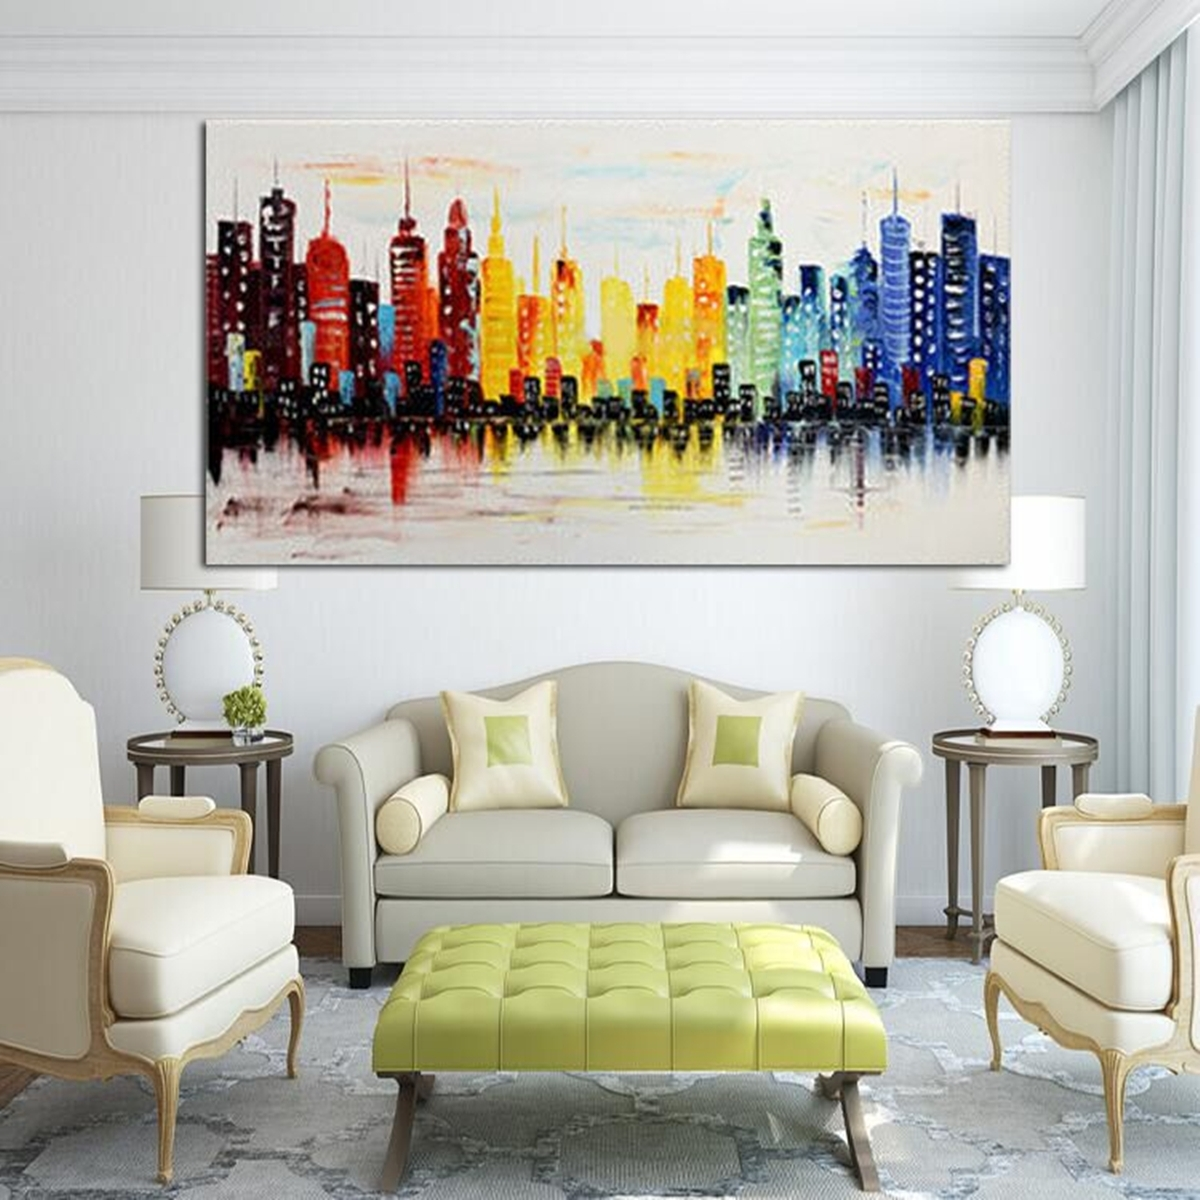 120X60Cm Modern City Canvas Abstract Painting Print Living Room Art Throughout Most Recently Released Living Room Painting Wall Art (View 1 of 20)